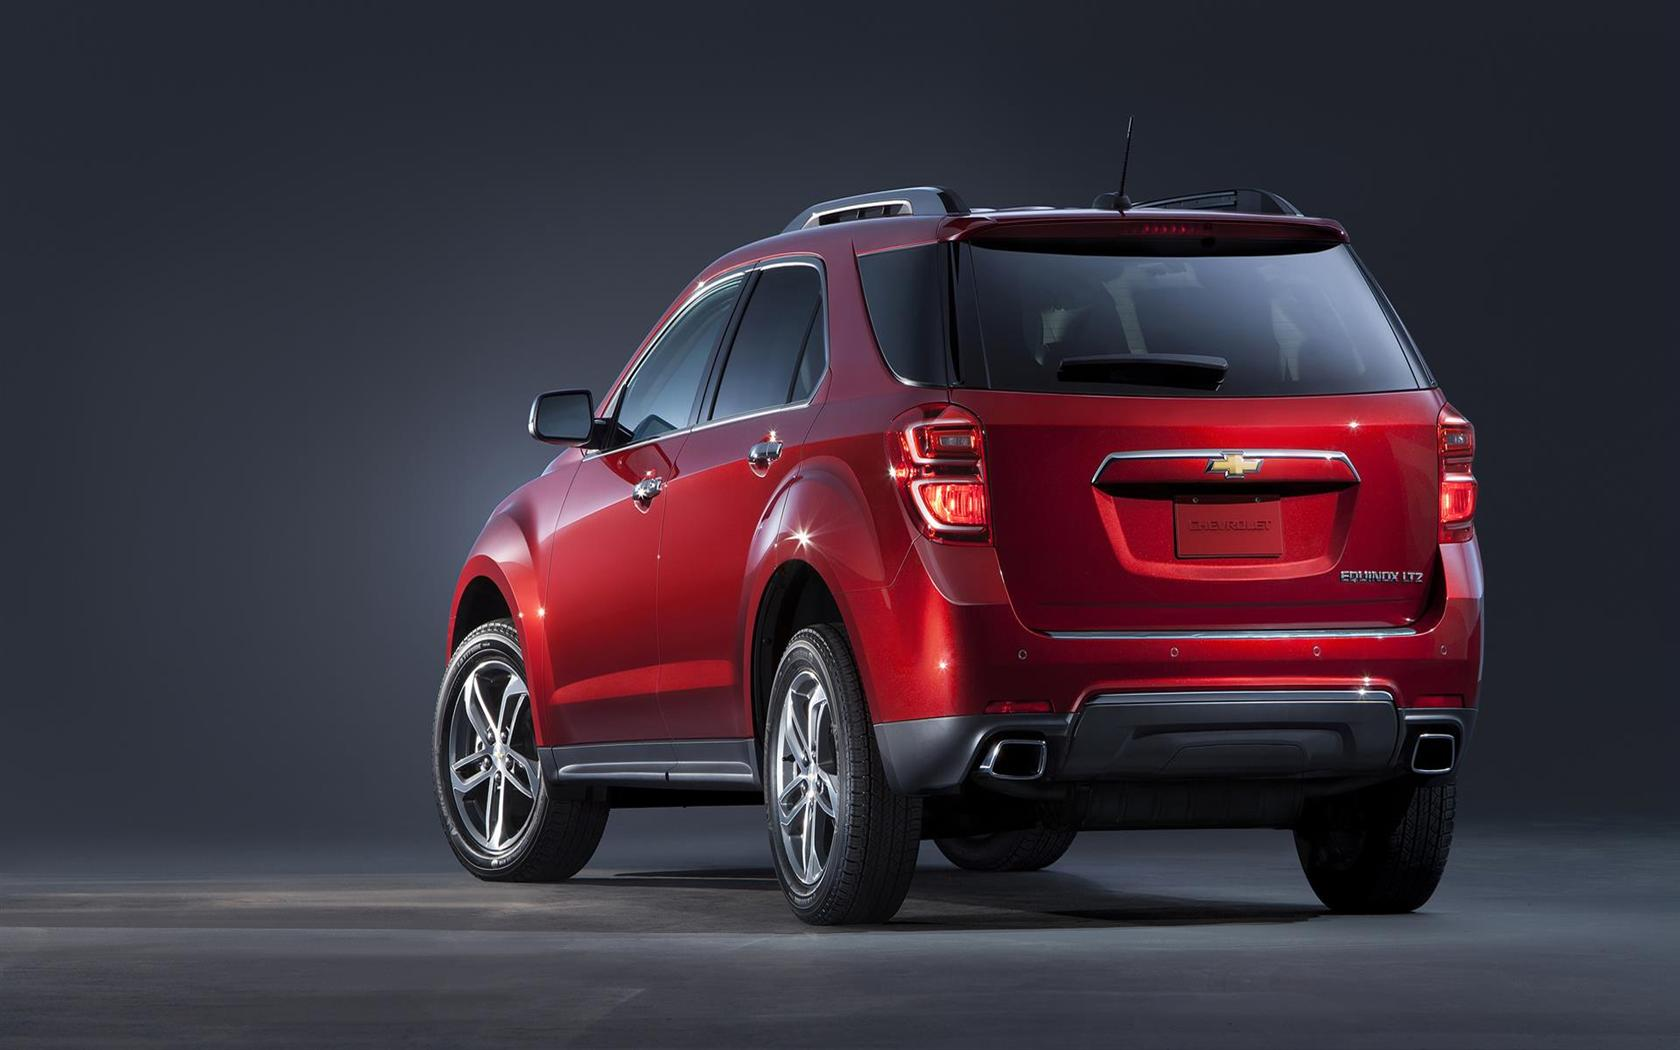 2016 chevrolet equinox images photo chevy equinox 2016. Black Bedroom Furniture Sets. Home Design Ideas